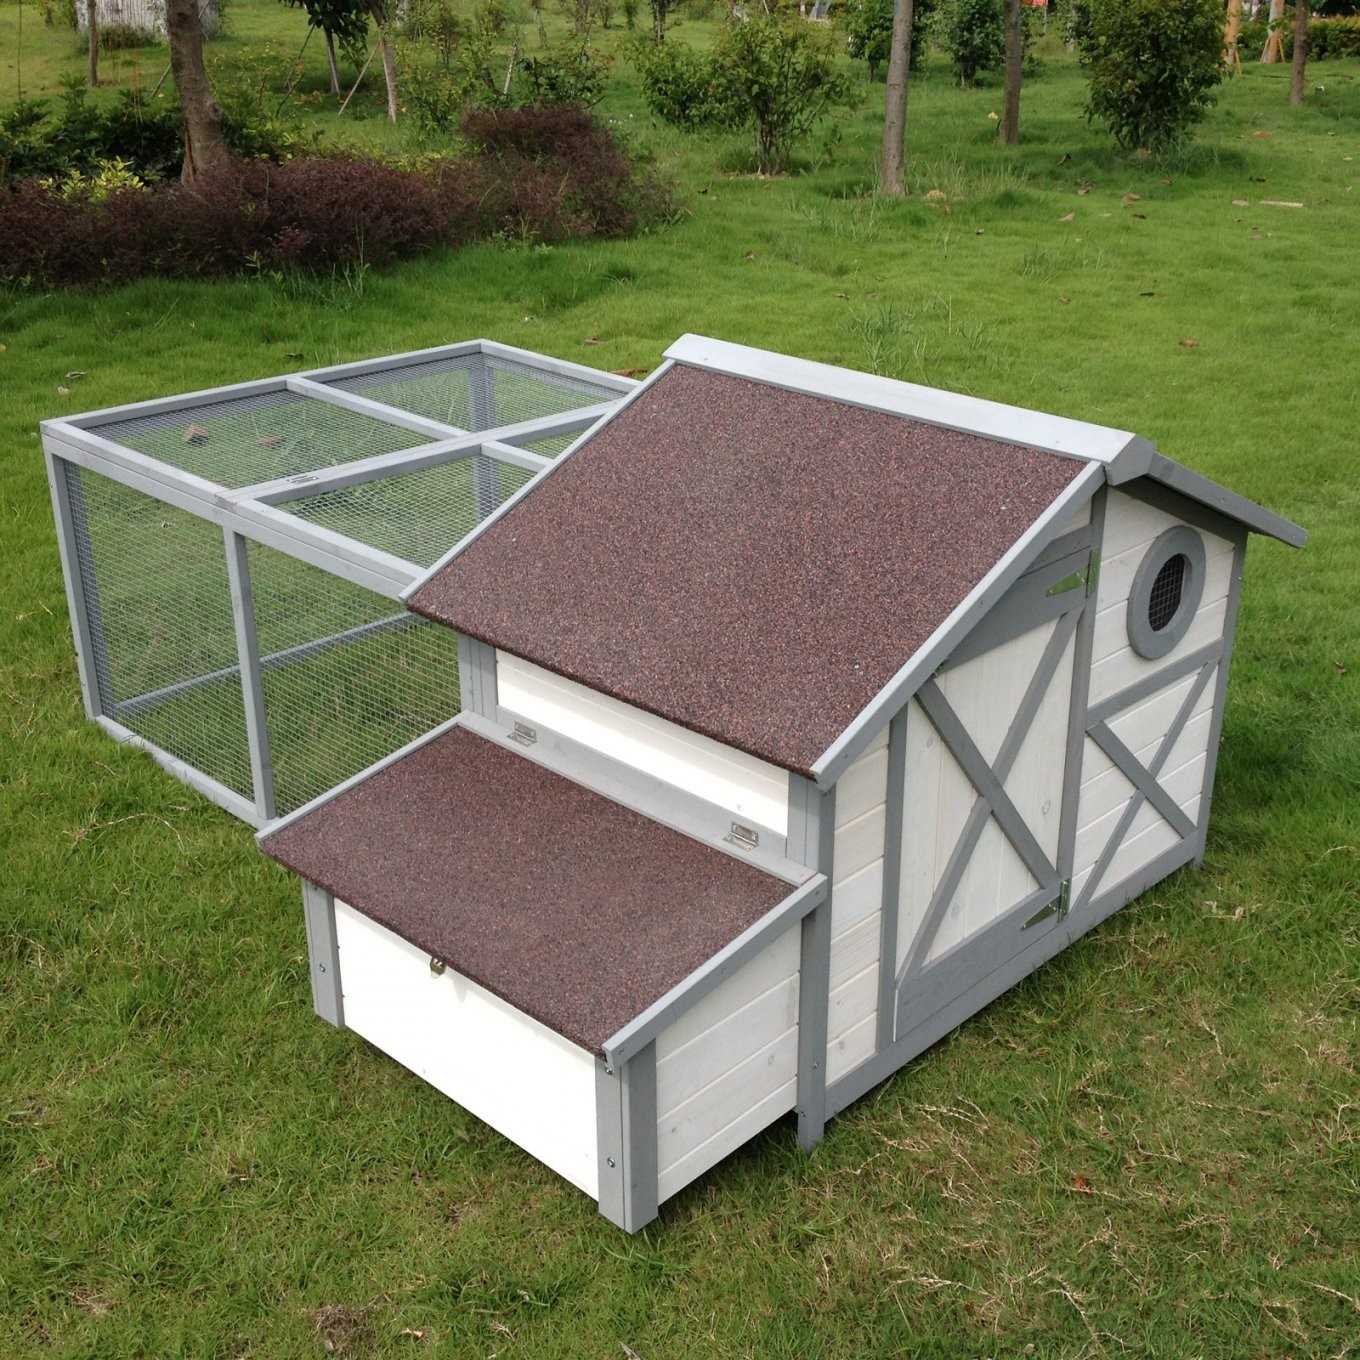 Boomer & George Cape Bay Dualuse Chicken Coop Rabbit Hutch von Boomer And George Rabbit Hutch Photo